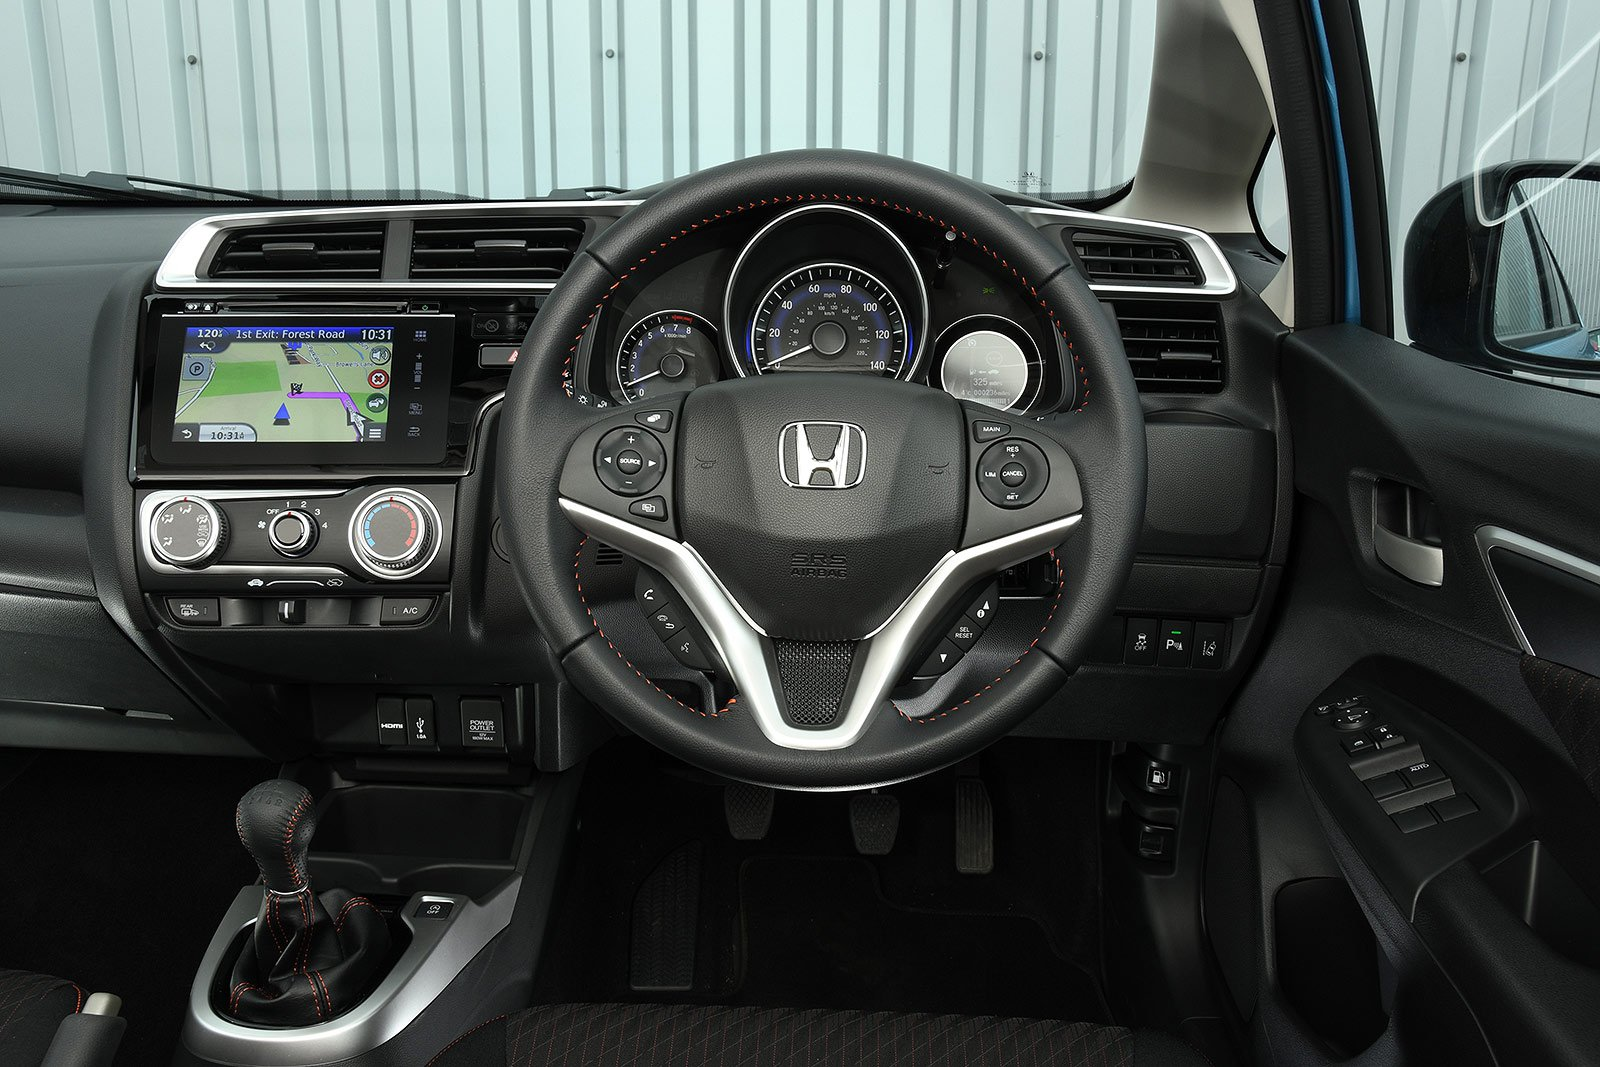 Honda Jazz EX 1.3 i-VTEC Manual - interior